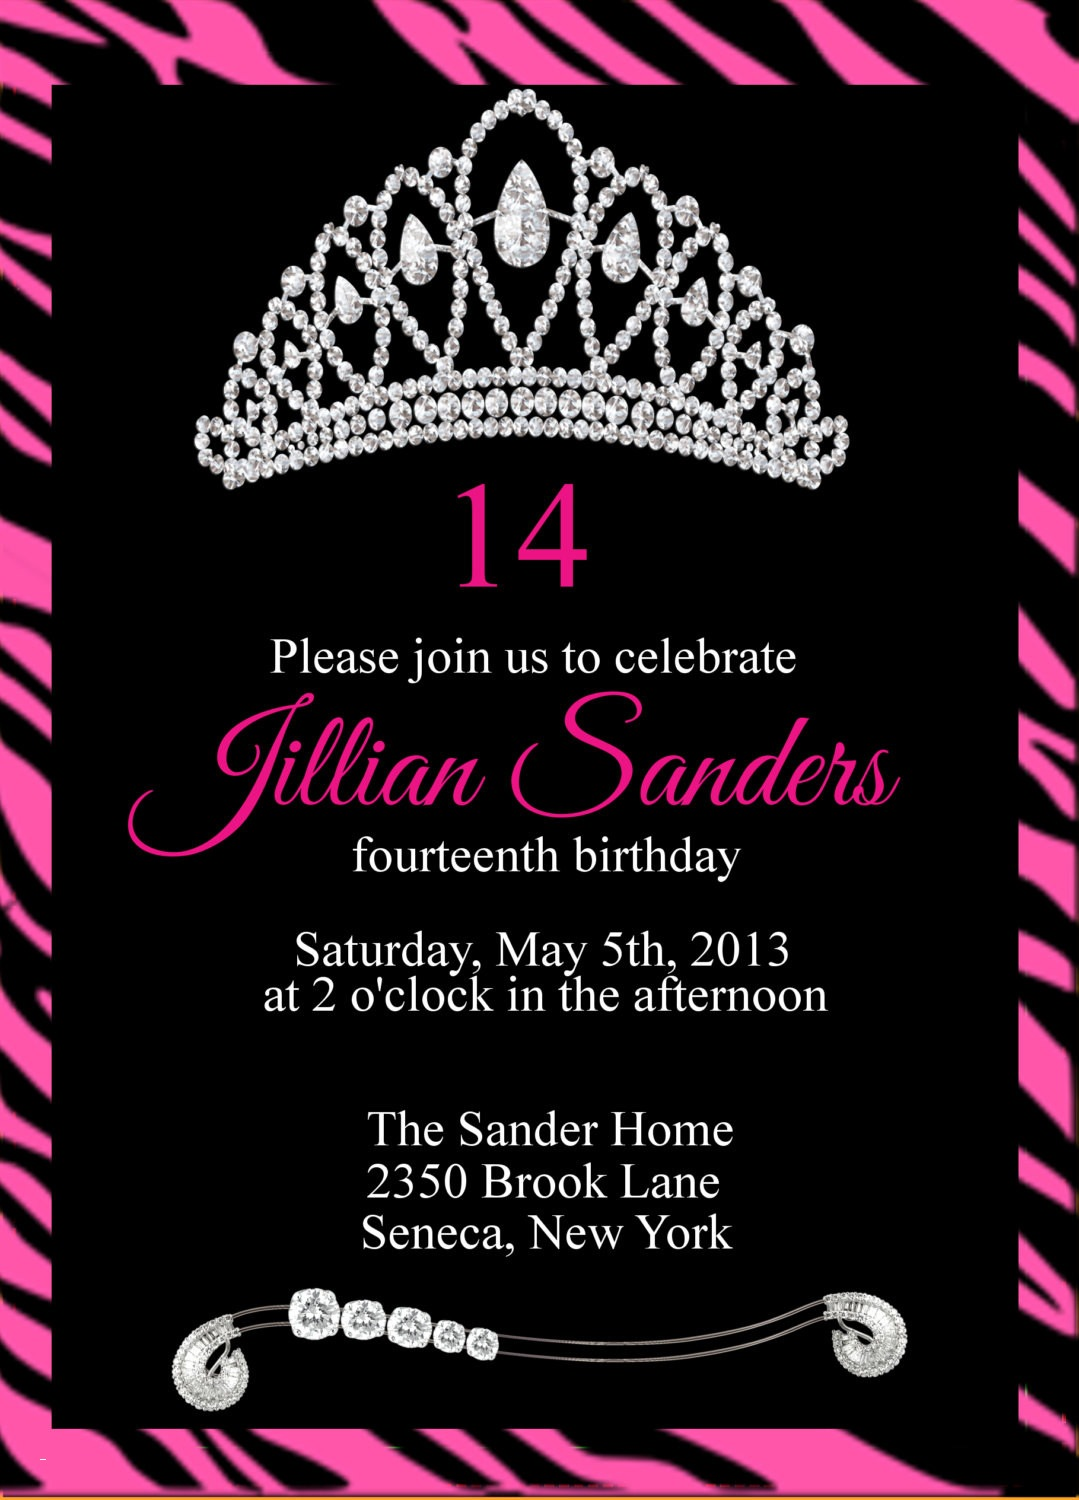 invitation cards for birthday party for teenagers ; teenage-birthday-party-invitations-templates-unique-birthday-invitation-card-design-inspirational-teenagers-birthday-of-teenage-birthday-party-invitations-templates